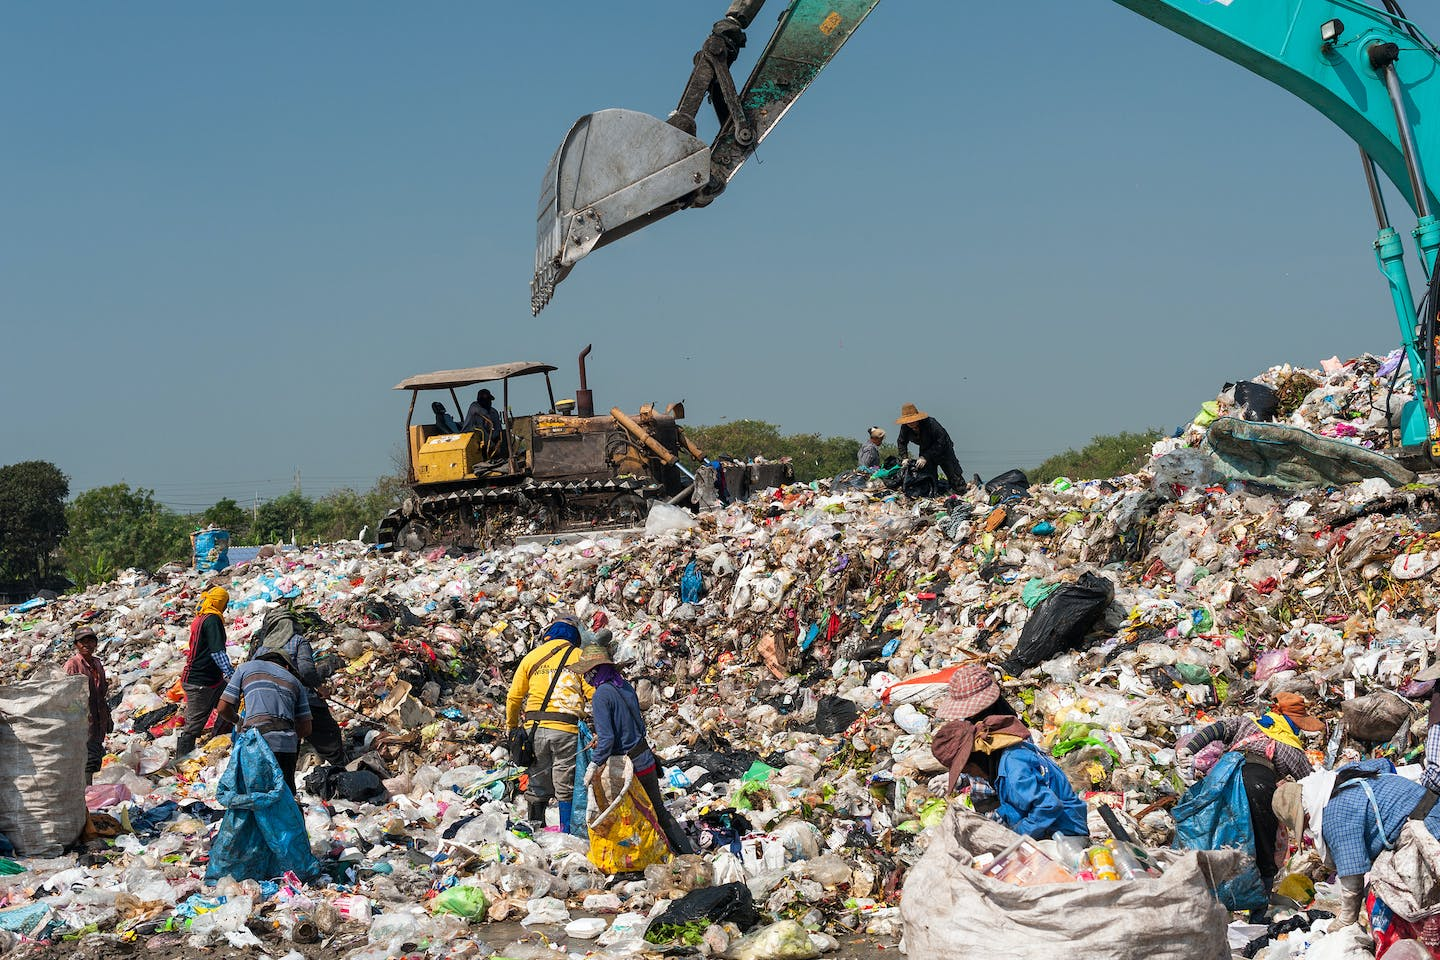 Scavengers pick through garbage collected at a landfill site in Thailand.